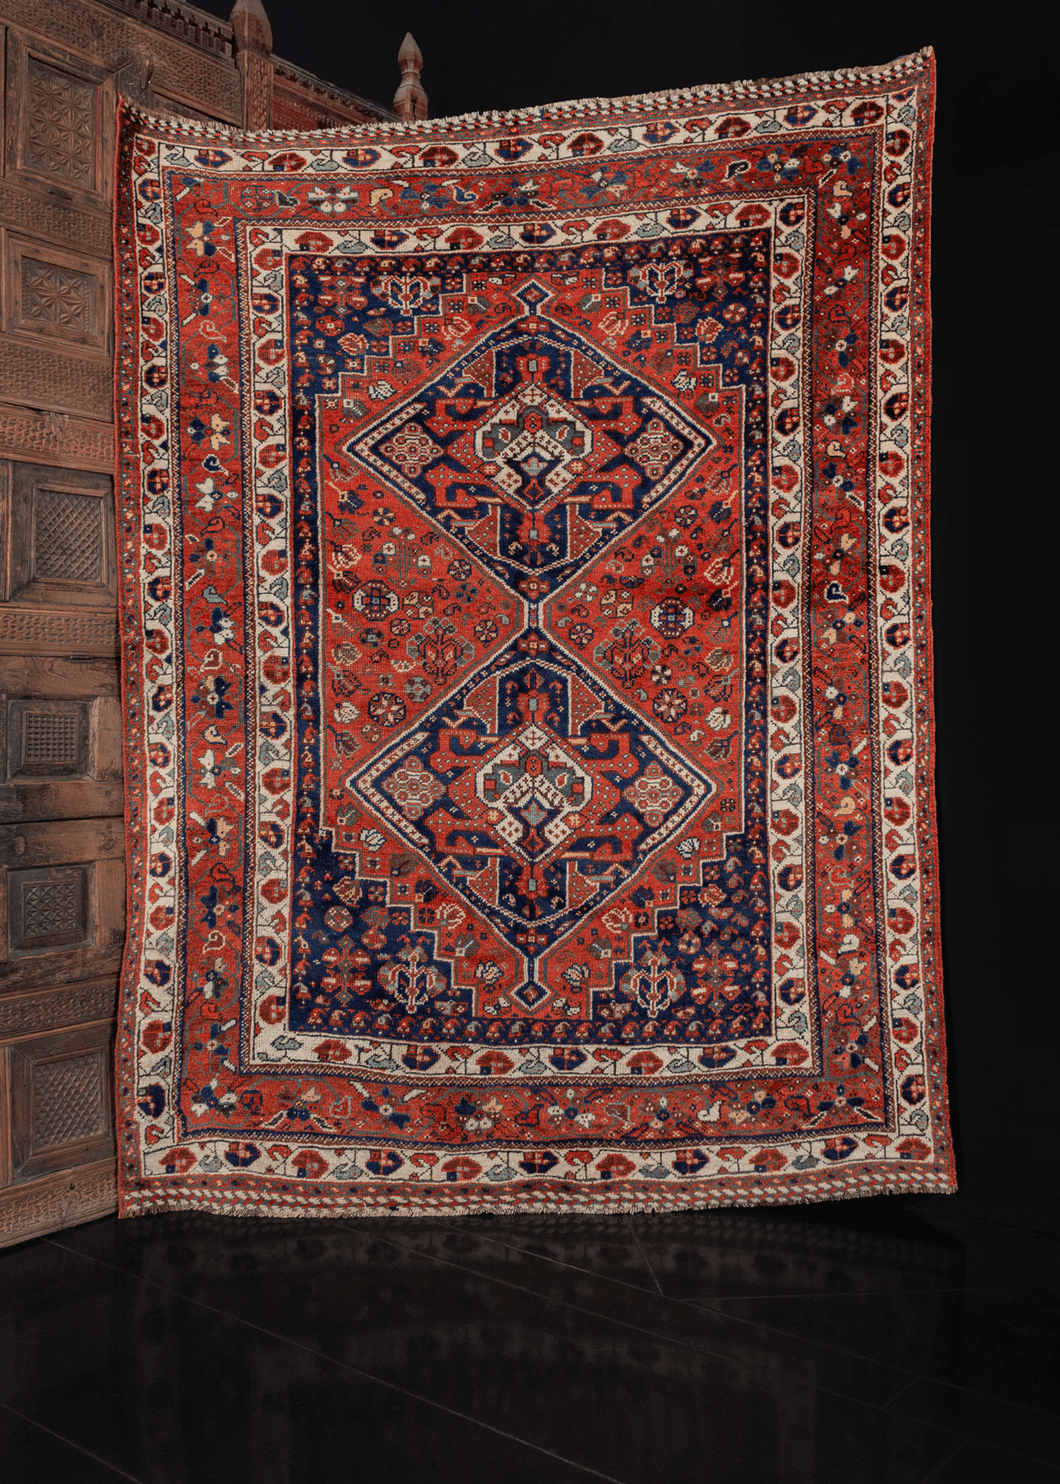 Khamseh rug with geometric pattern in blue and orange